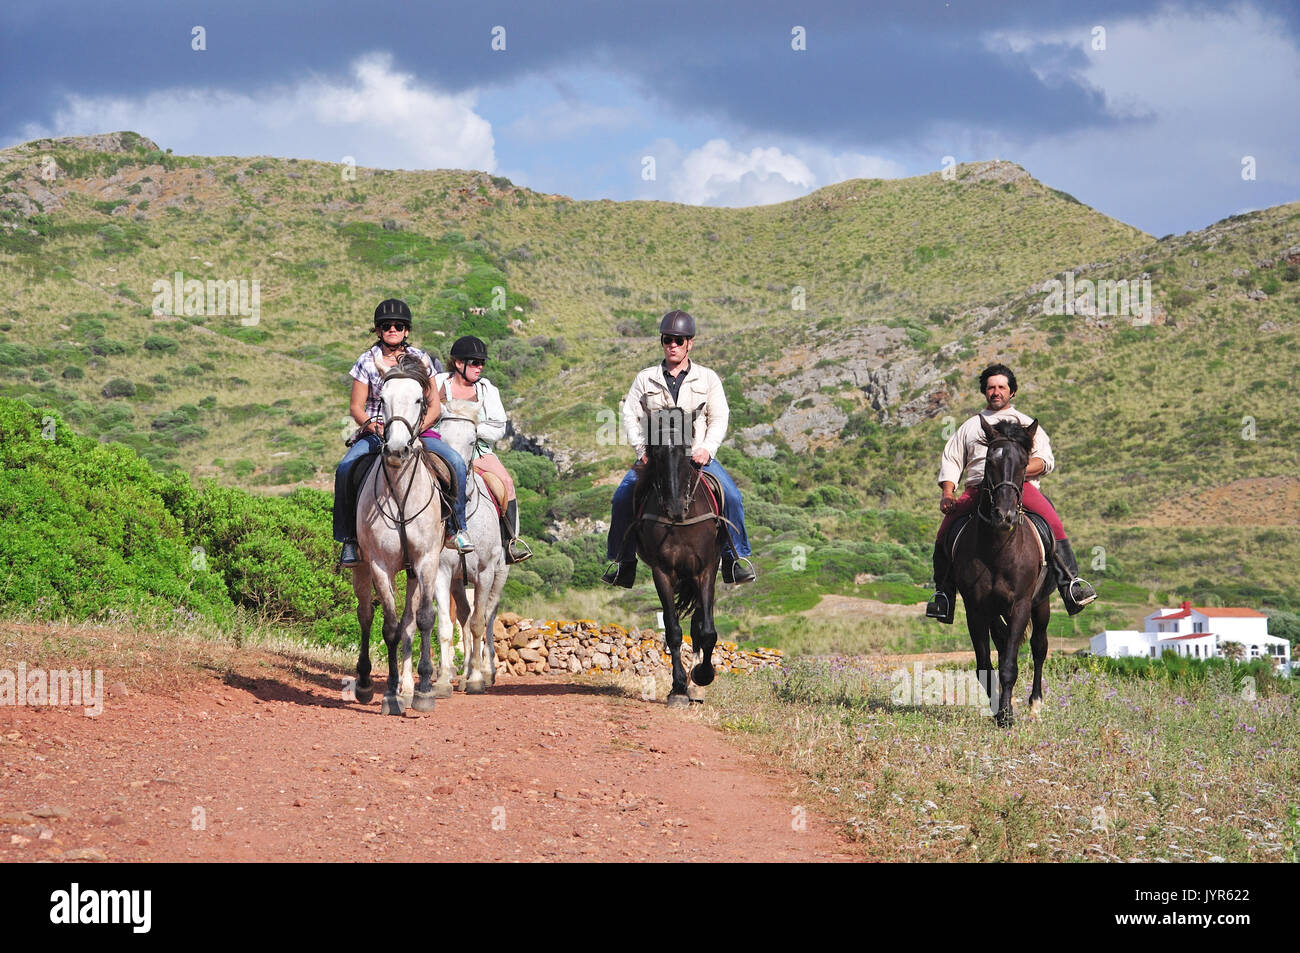 Horse riding trek to Cala Pregonda, Es Mercadal, Menorca, Balearic Islands, Spain - Stock Image